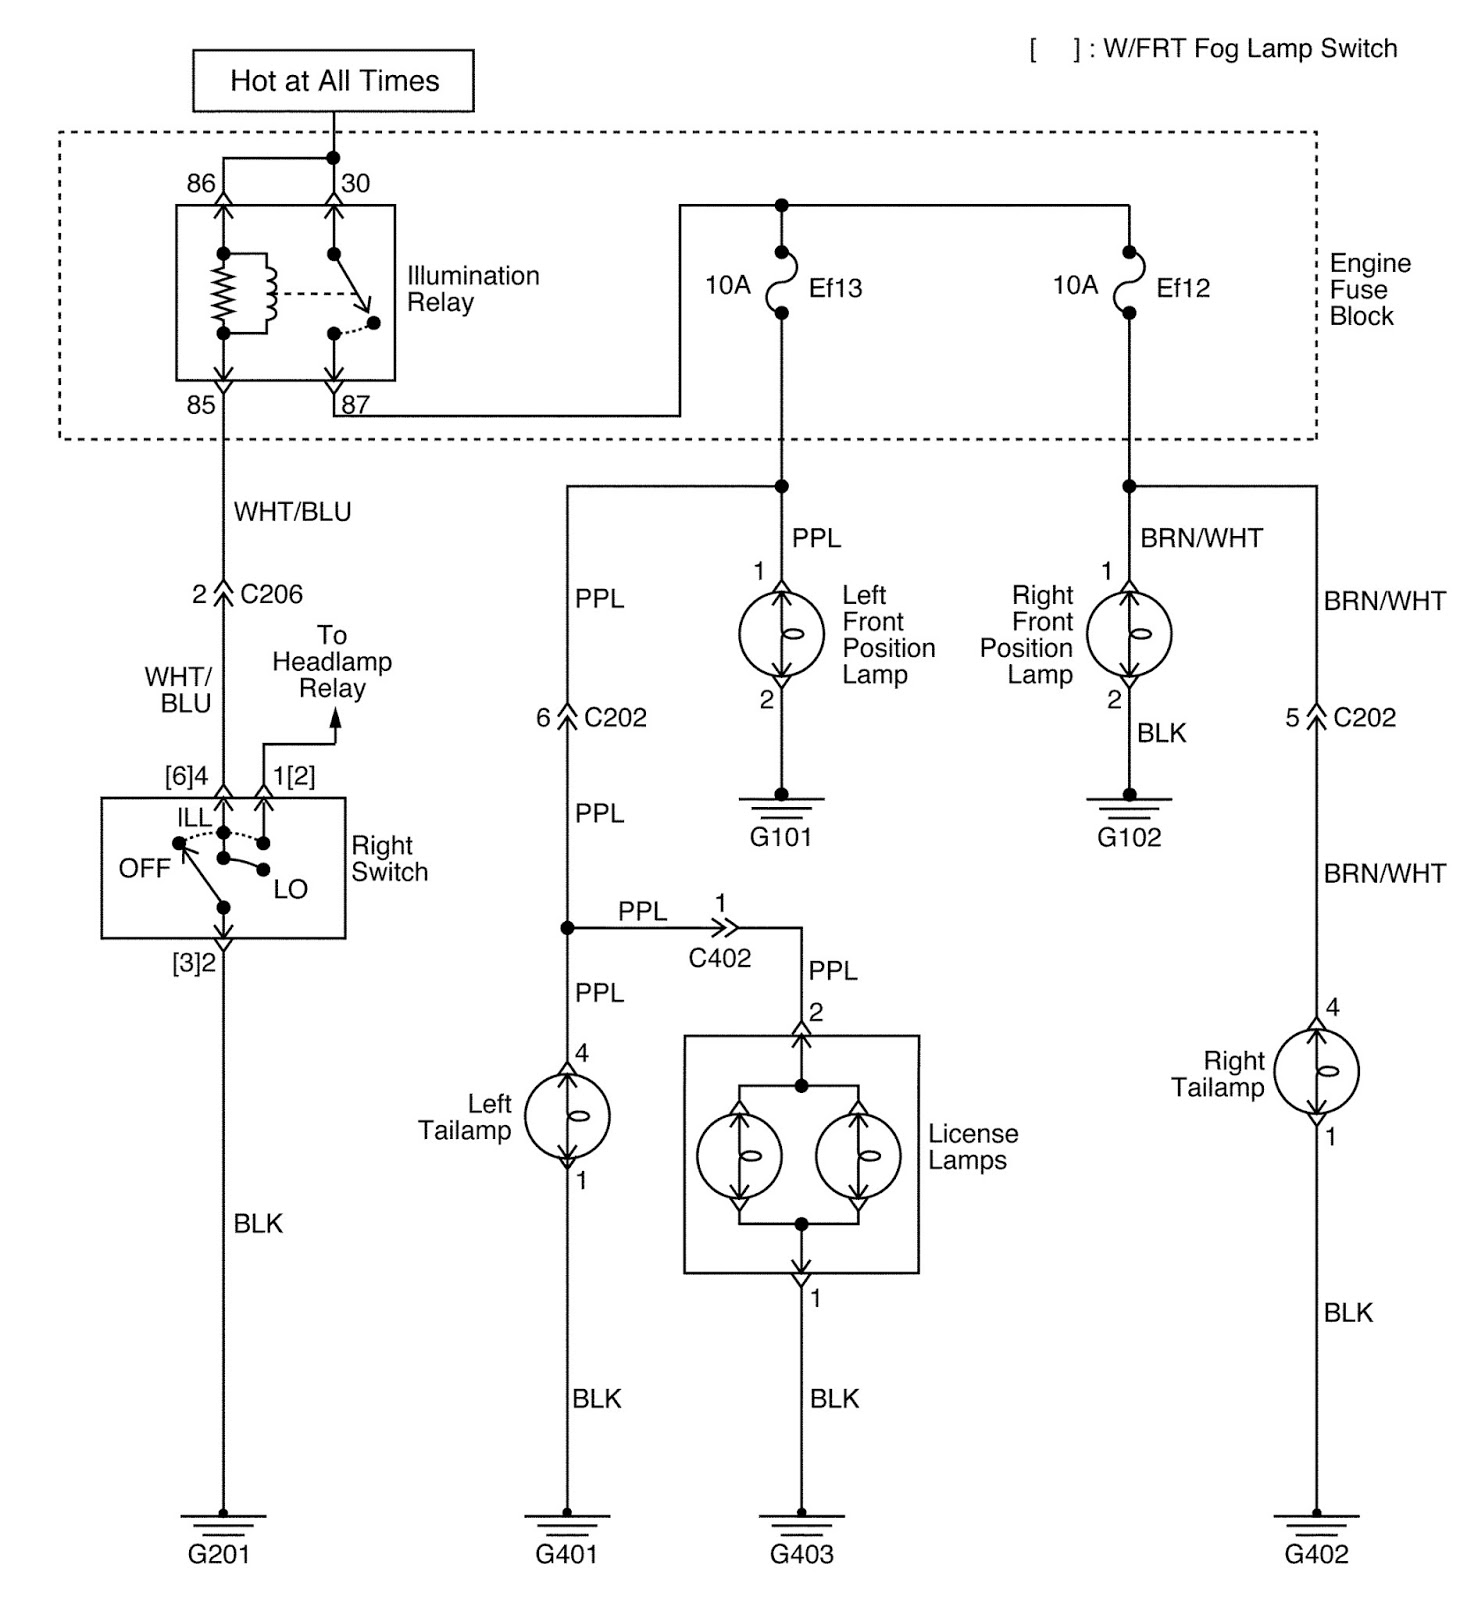 medium resolution of daewoo lanos wiring diagram data wiring diagram schema custom daewoo lanos 2002 2002 daewoo lanos wiring diagram